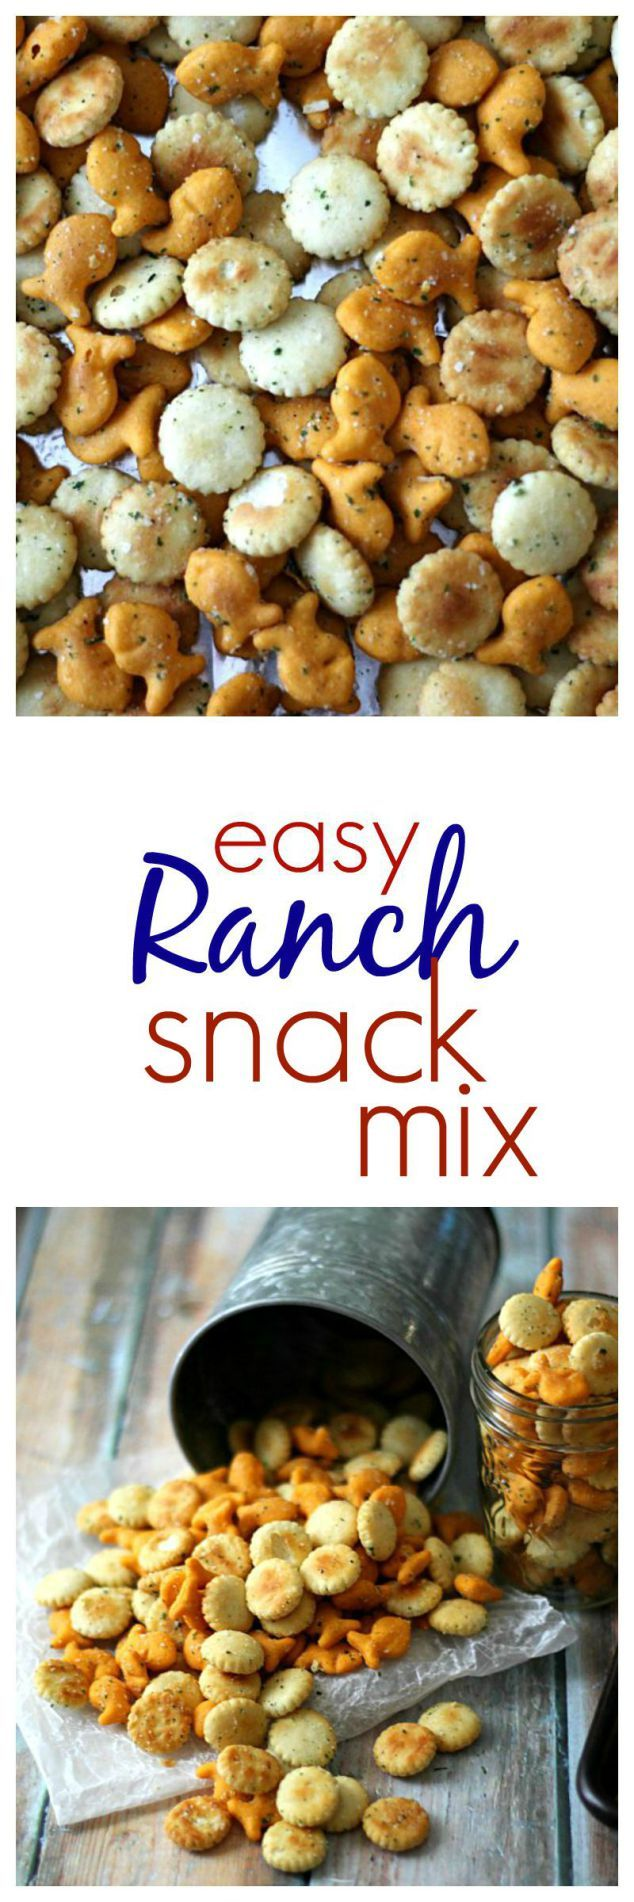 Easy Ranch Snack Mix–perfect for traveling too!